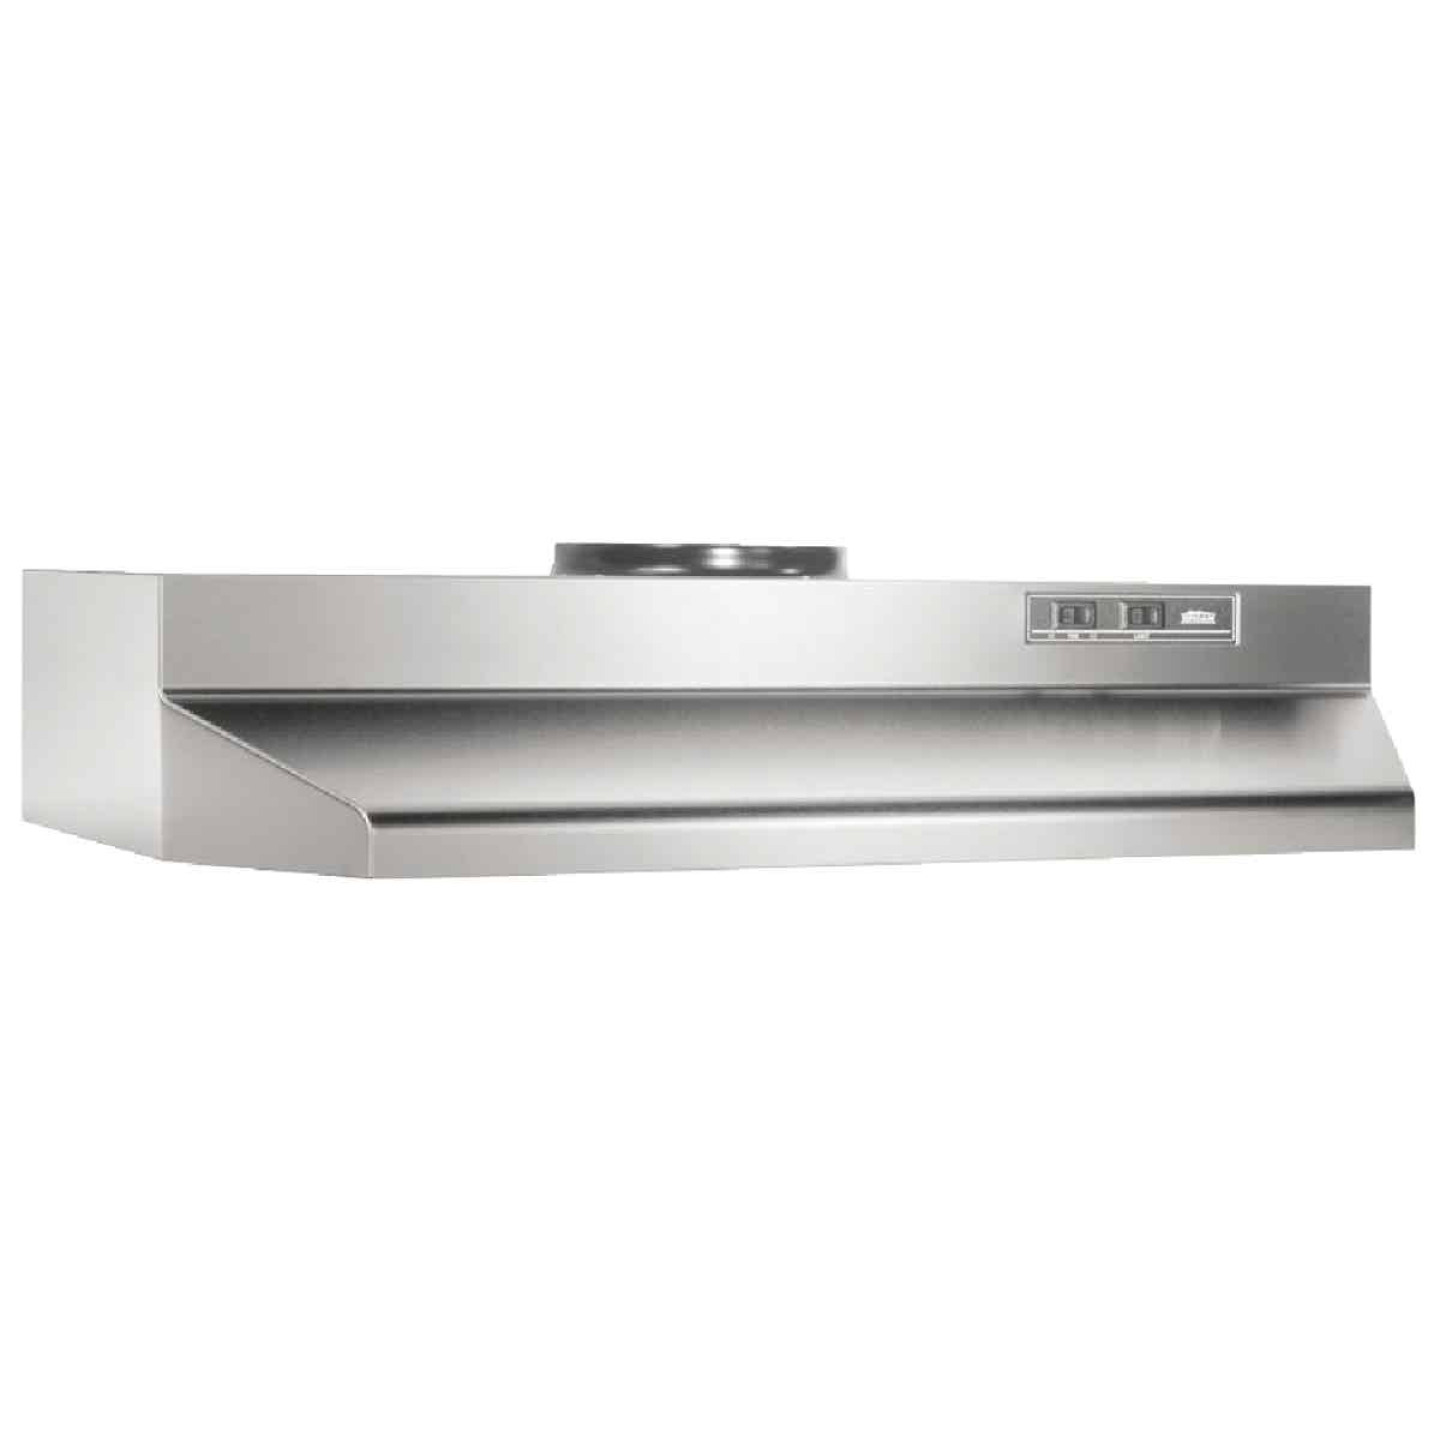 Broan-Nutone F Series 36 In. Convertible Stainless Steel Range Hood Image 1